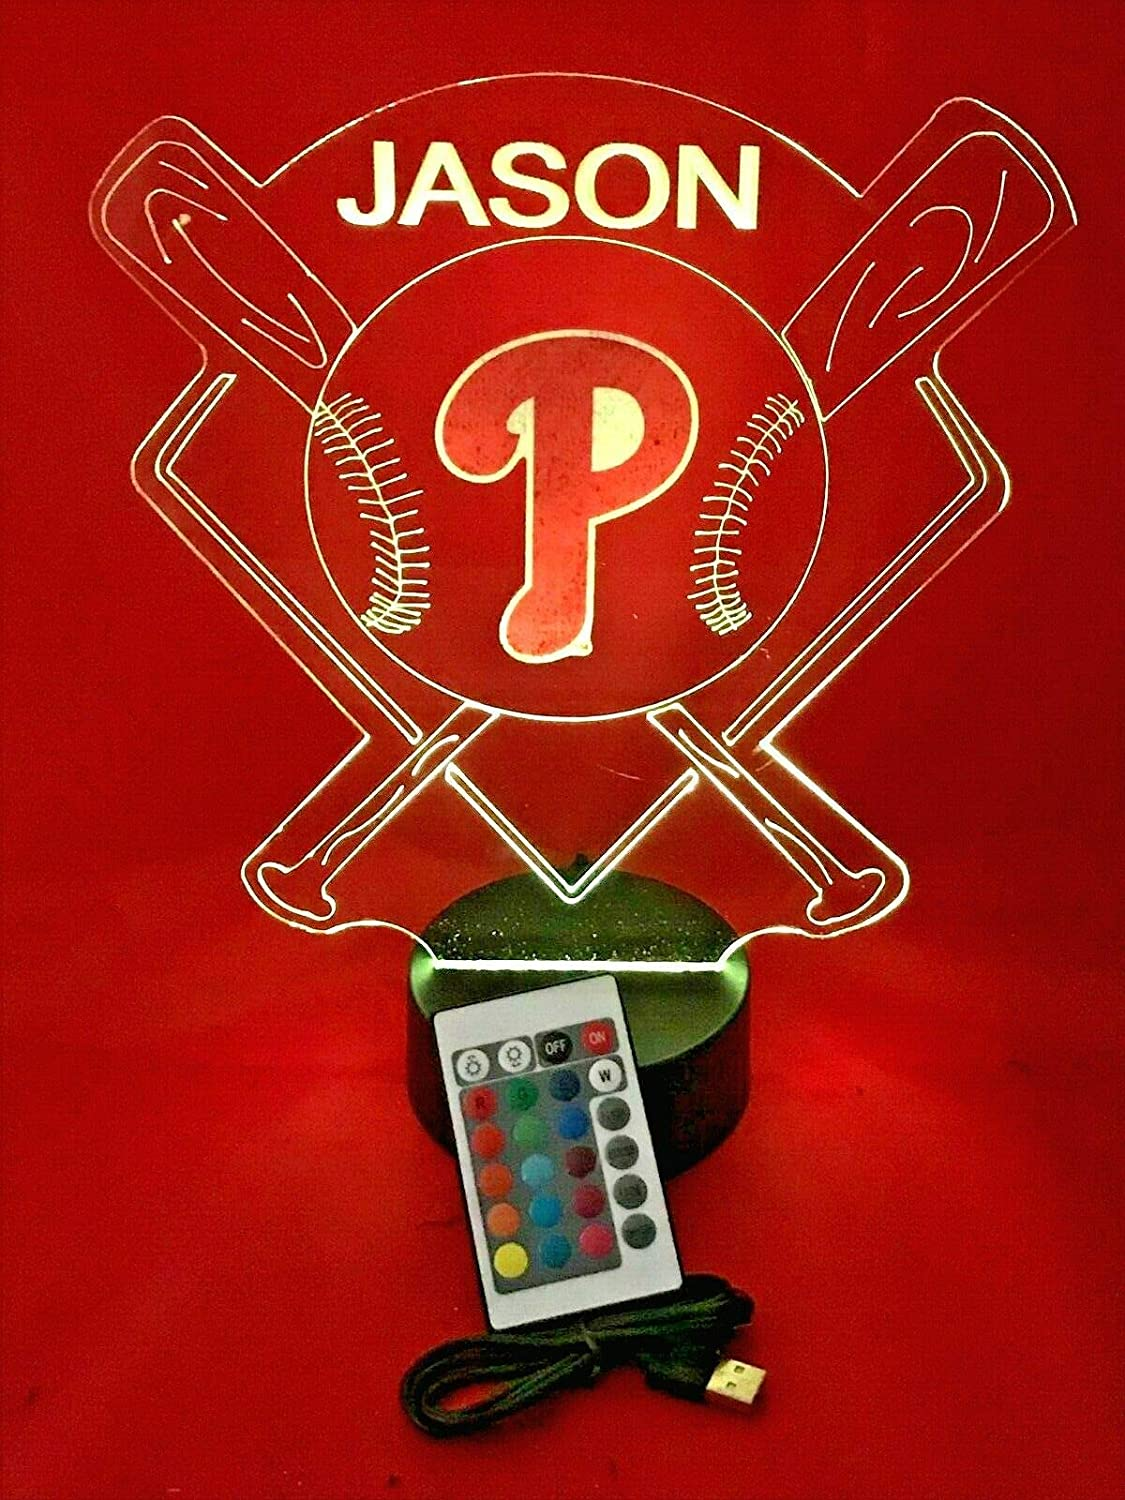 Baseball Night Light Up Lamp LED Lamp Personalized Handmade Stadium with Bats Free Personalization and Remote, Men Man Boys Girls Sports Gift, 16 Color Options, and Variations! (Phila Phillies)